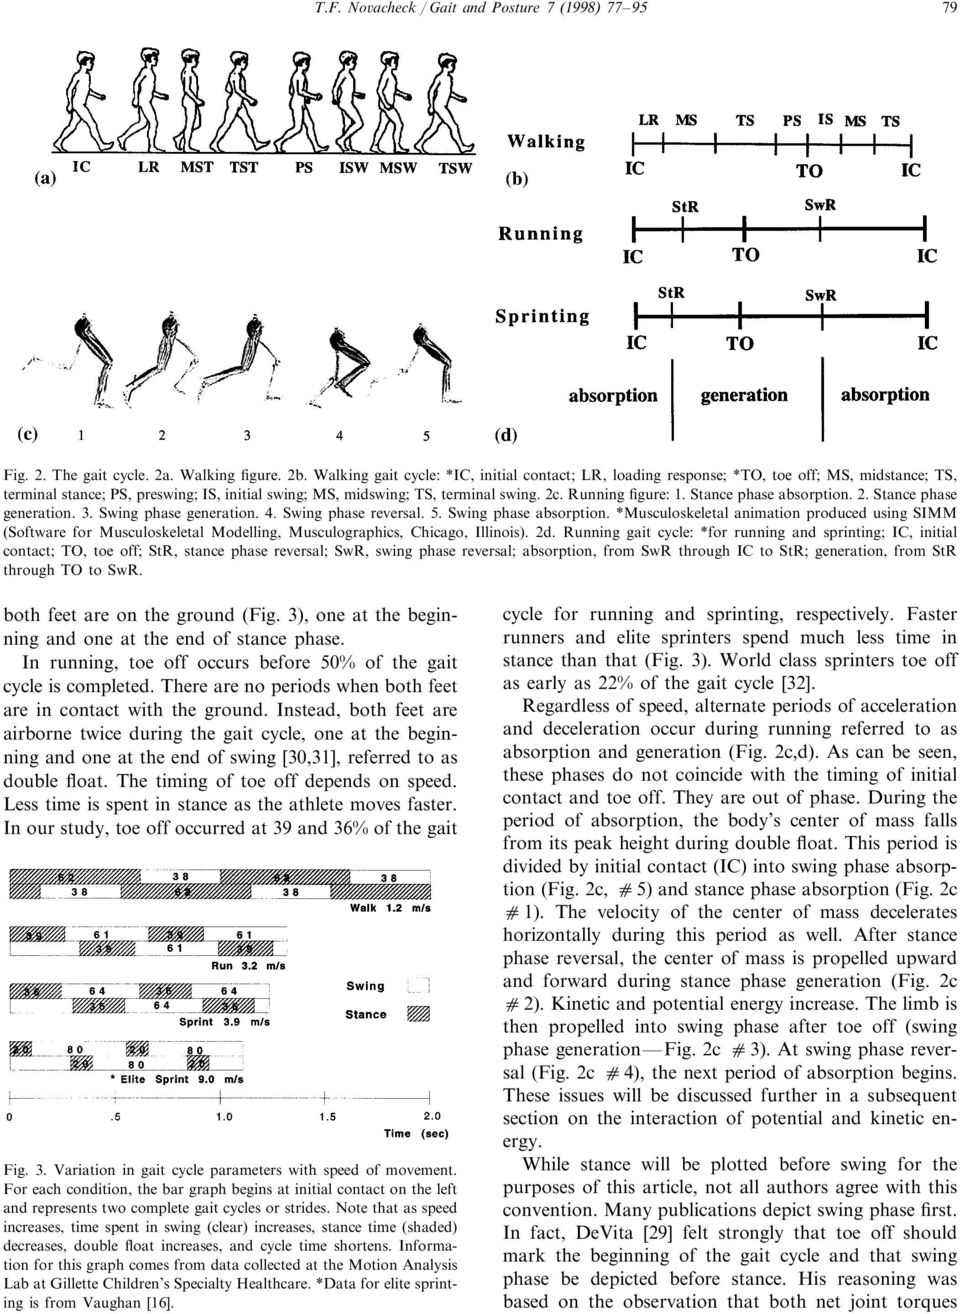 Running figure: 1. Stance phase absorption. 2. Stance phase generation. 3. Swing phase generation. 4. Swing phase reversal. 5. Swing phase absorption.